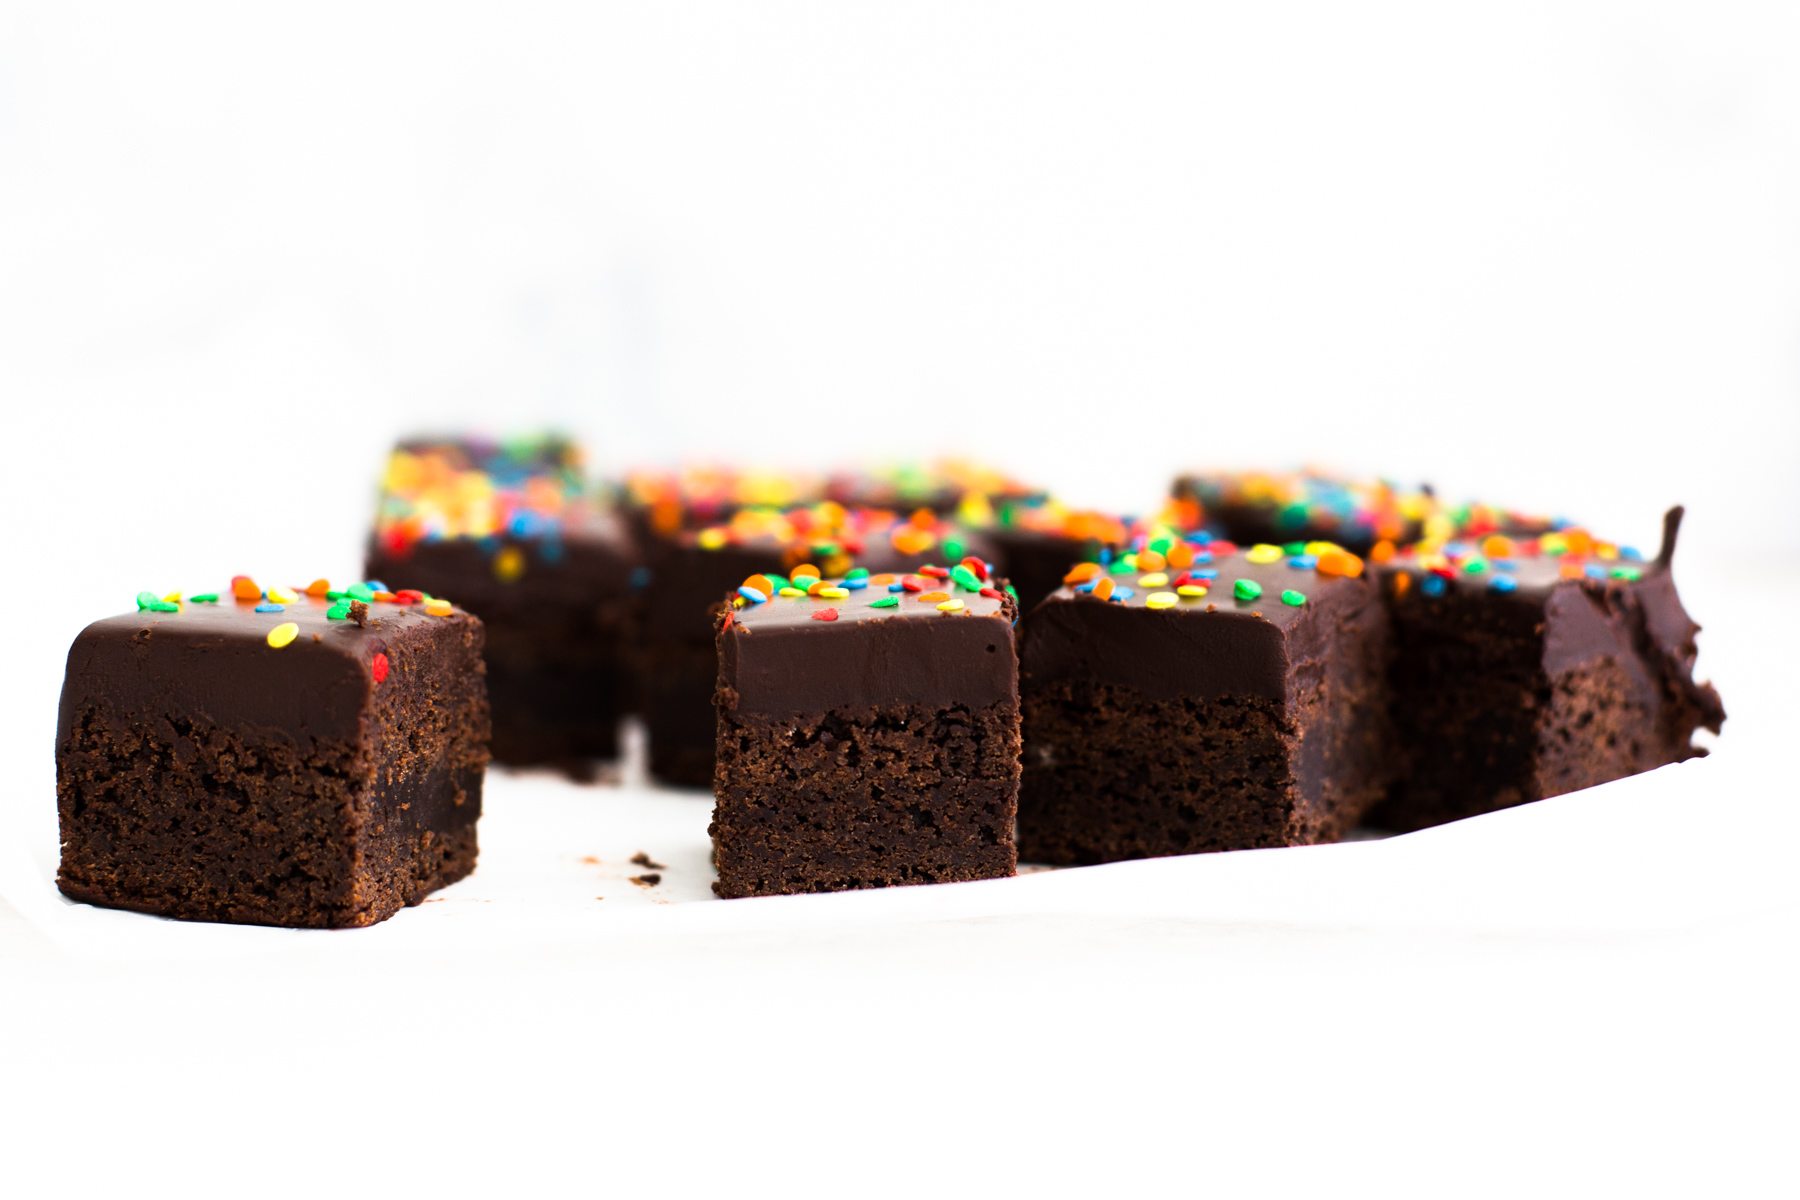 Vegan Cosmic Brownies - a Little Debbie classic veganized. Delicious Vegan Fudge Brownie topped with Chocolate Ganache and Sprinkles. #vegan #cosmic #brownies #chocolate #veganbrownies #littledebbie #american #chewy #ganache #icing #veganbaking #vegancosmicbrownies #onebowl